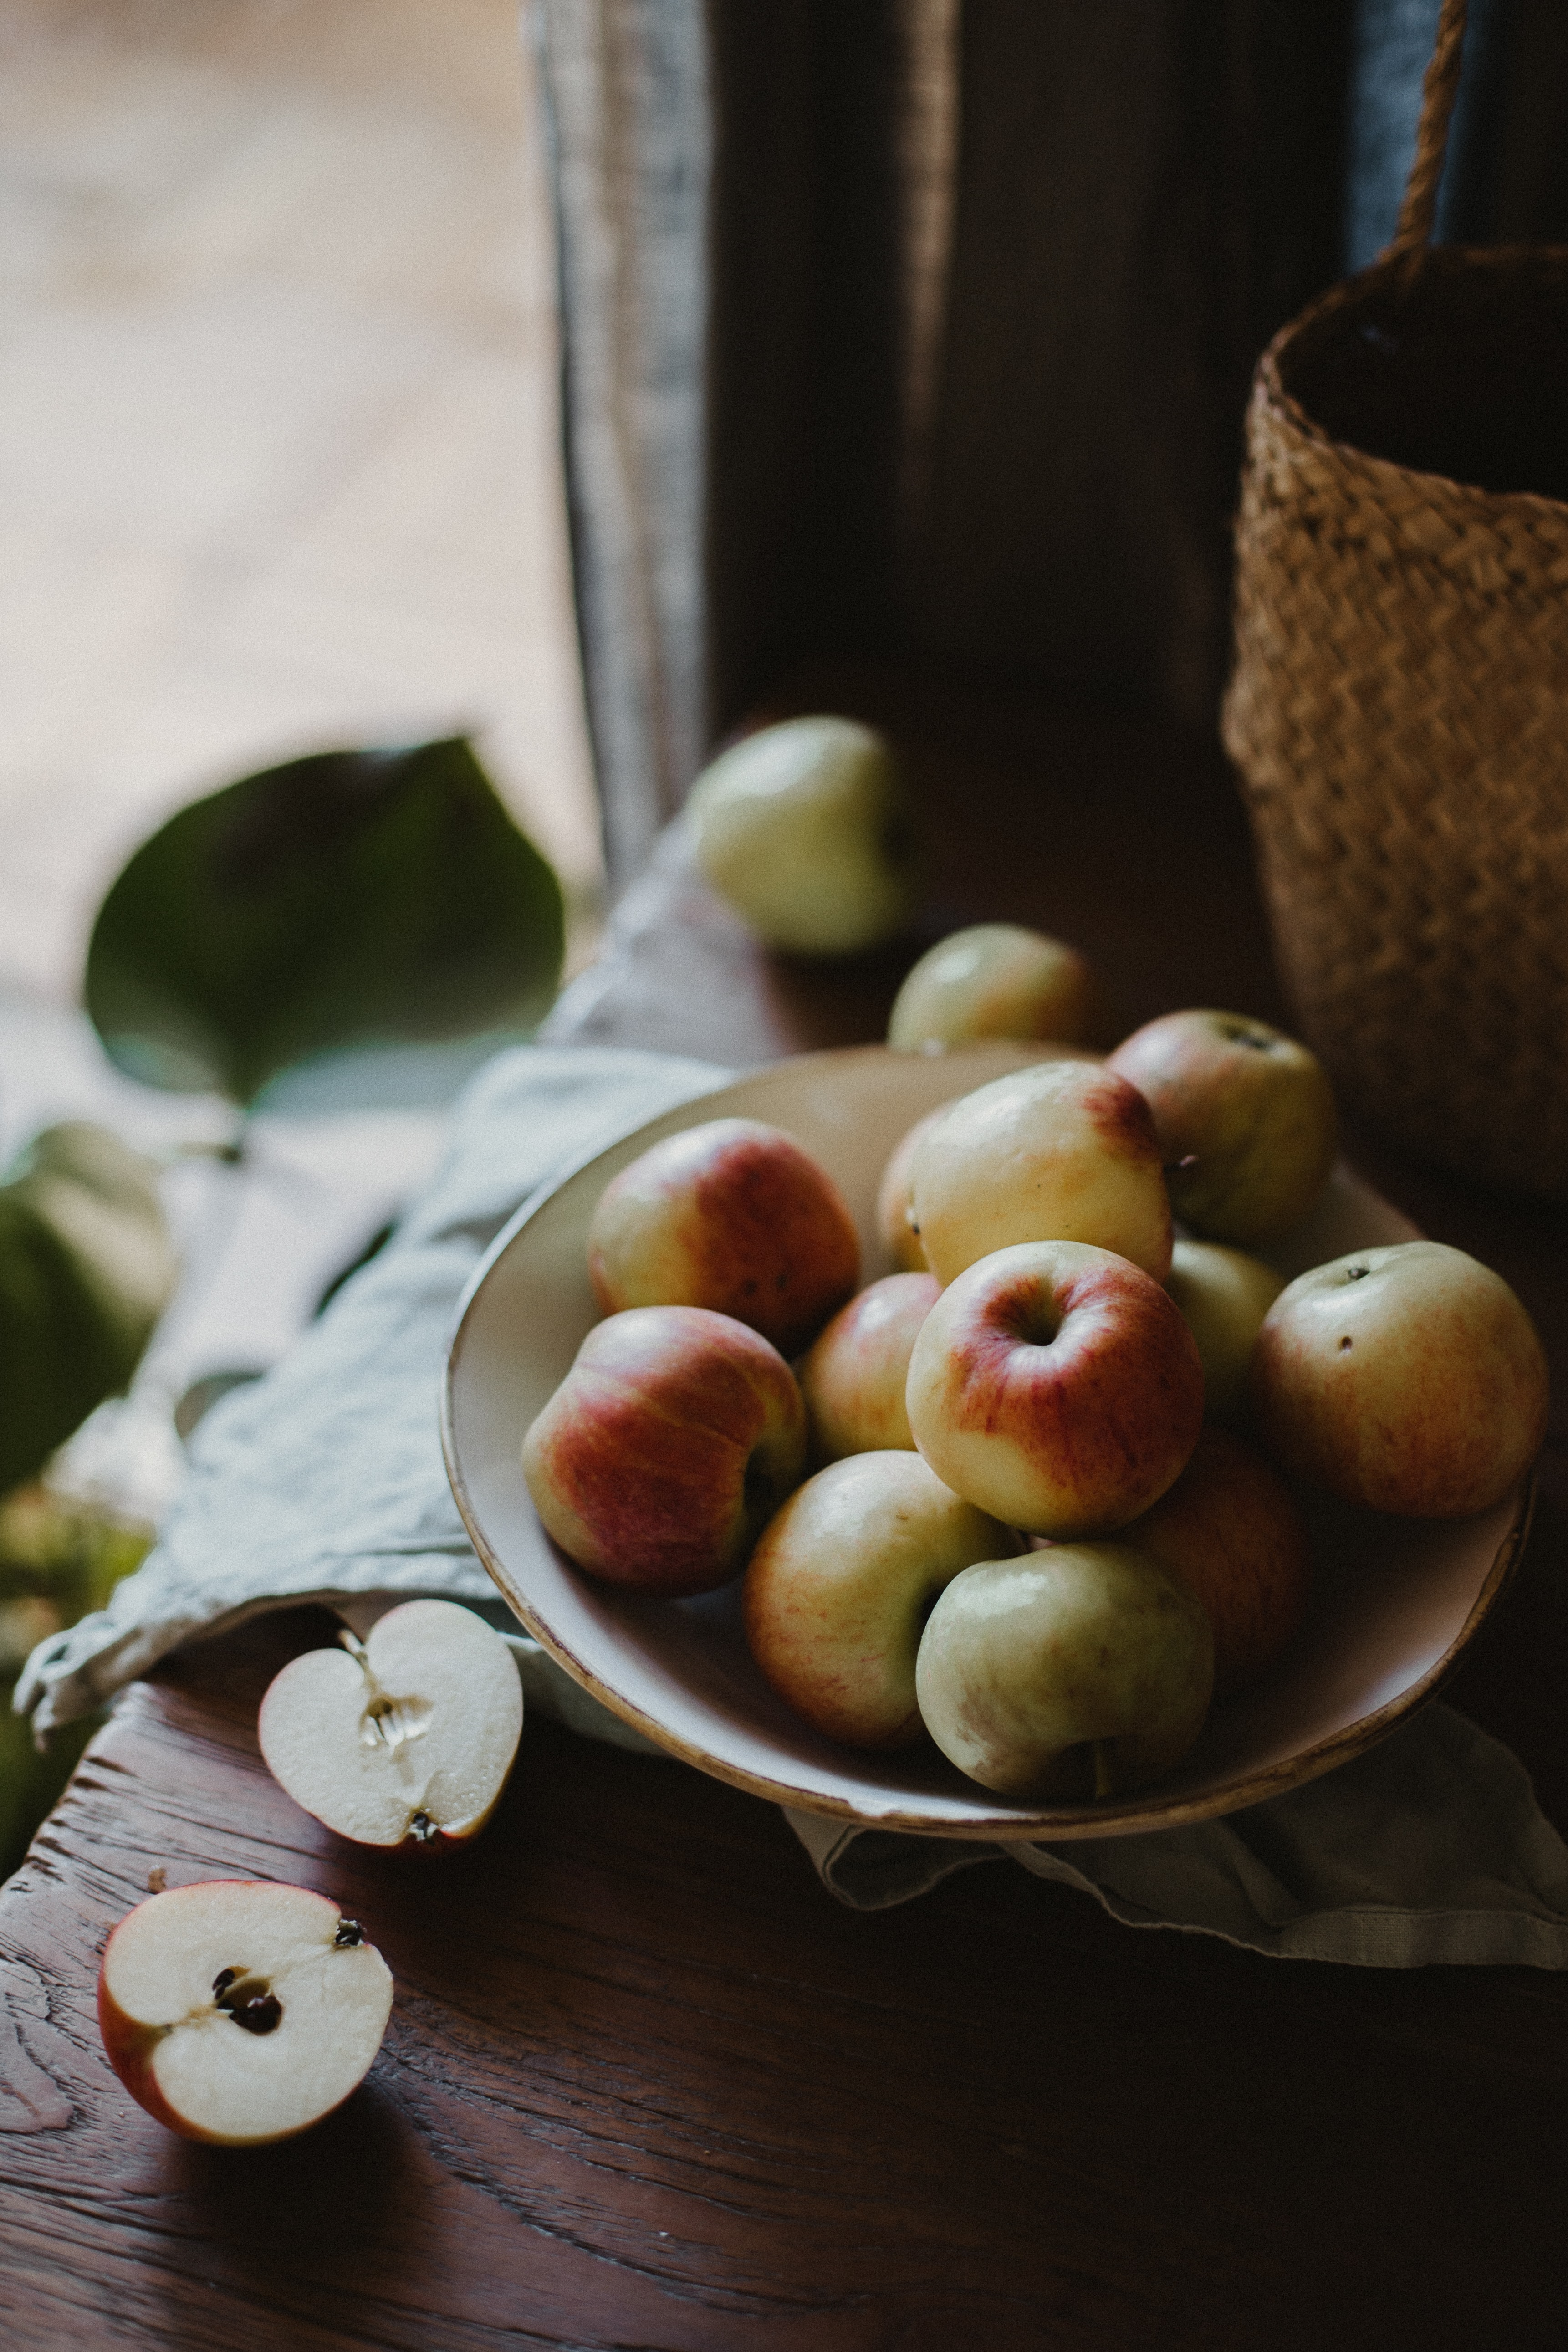 116353 Screensavers and Wallpapers Apple for phone. Download Food, Apple, Plate, Cloth, Table, Fruits, Apples pictures for free